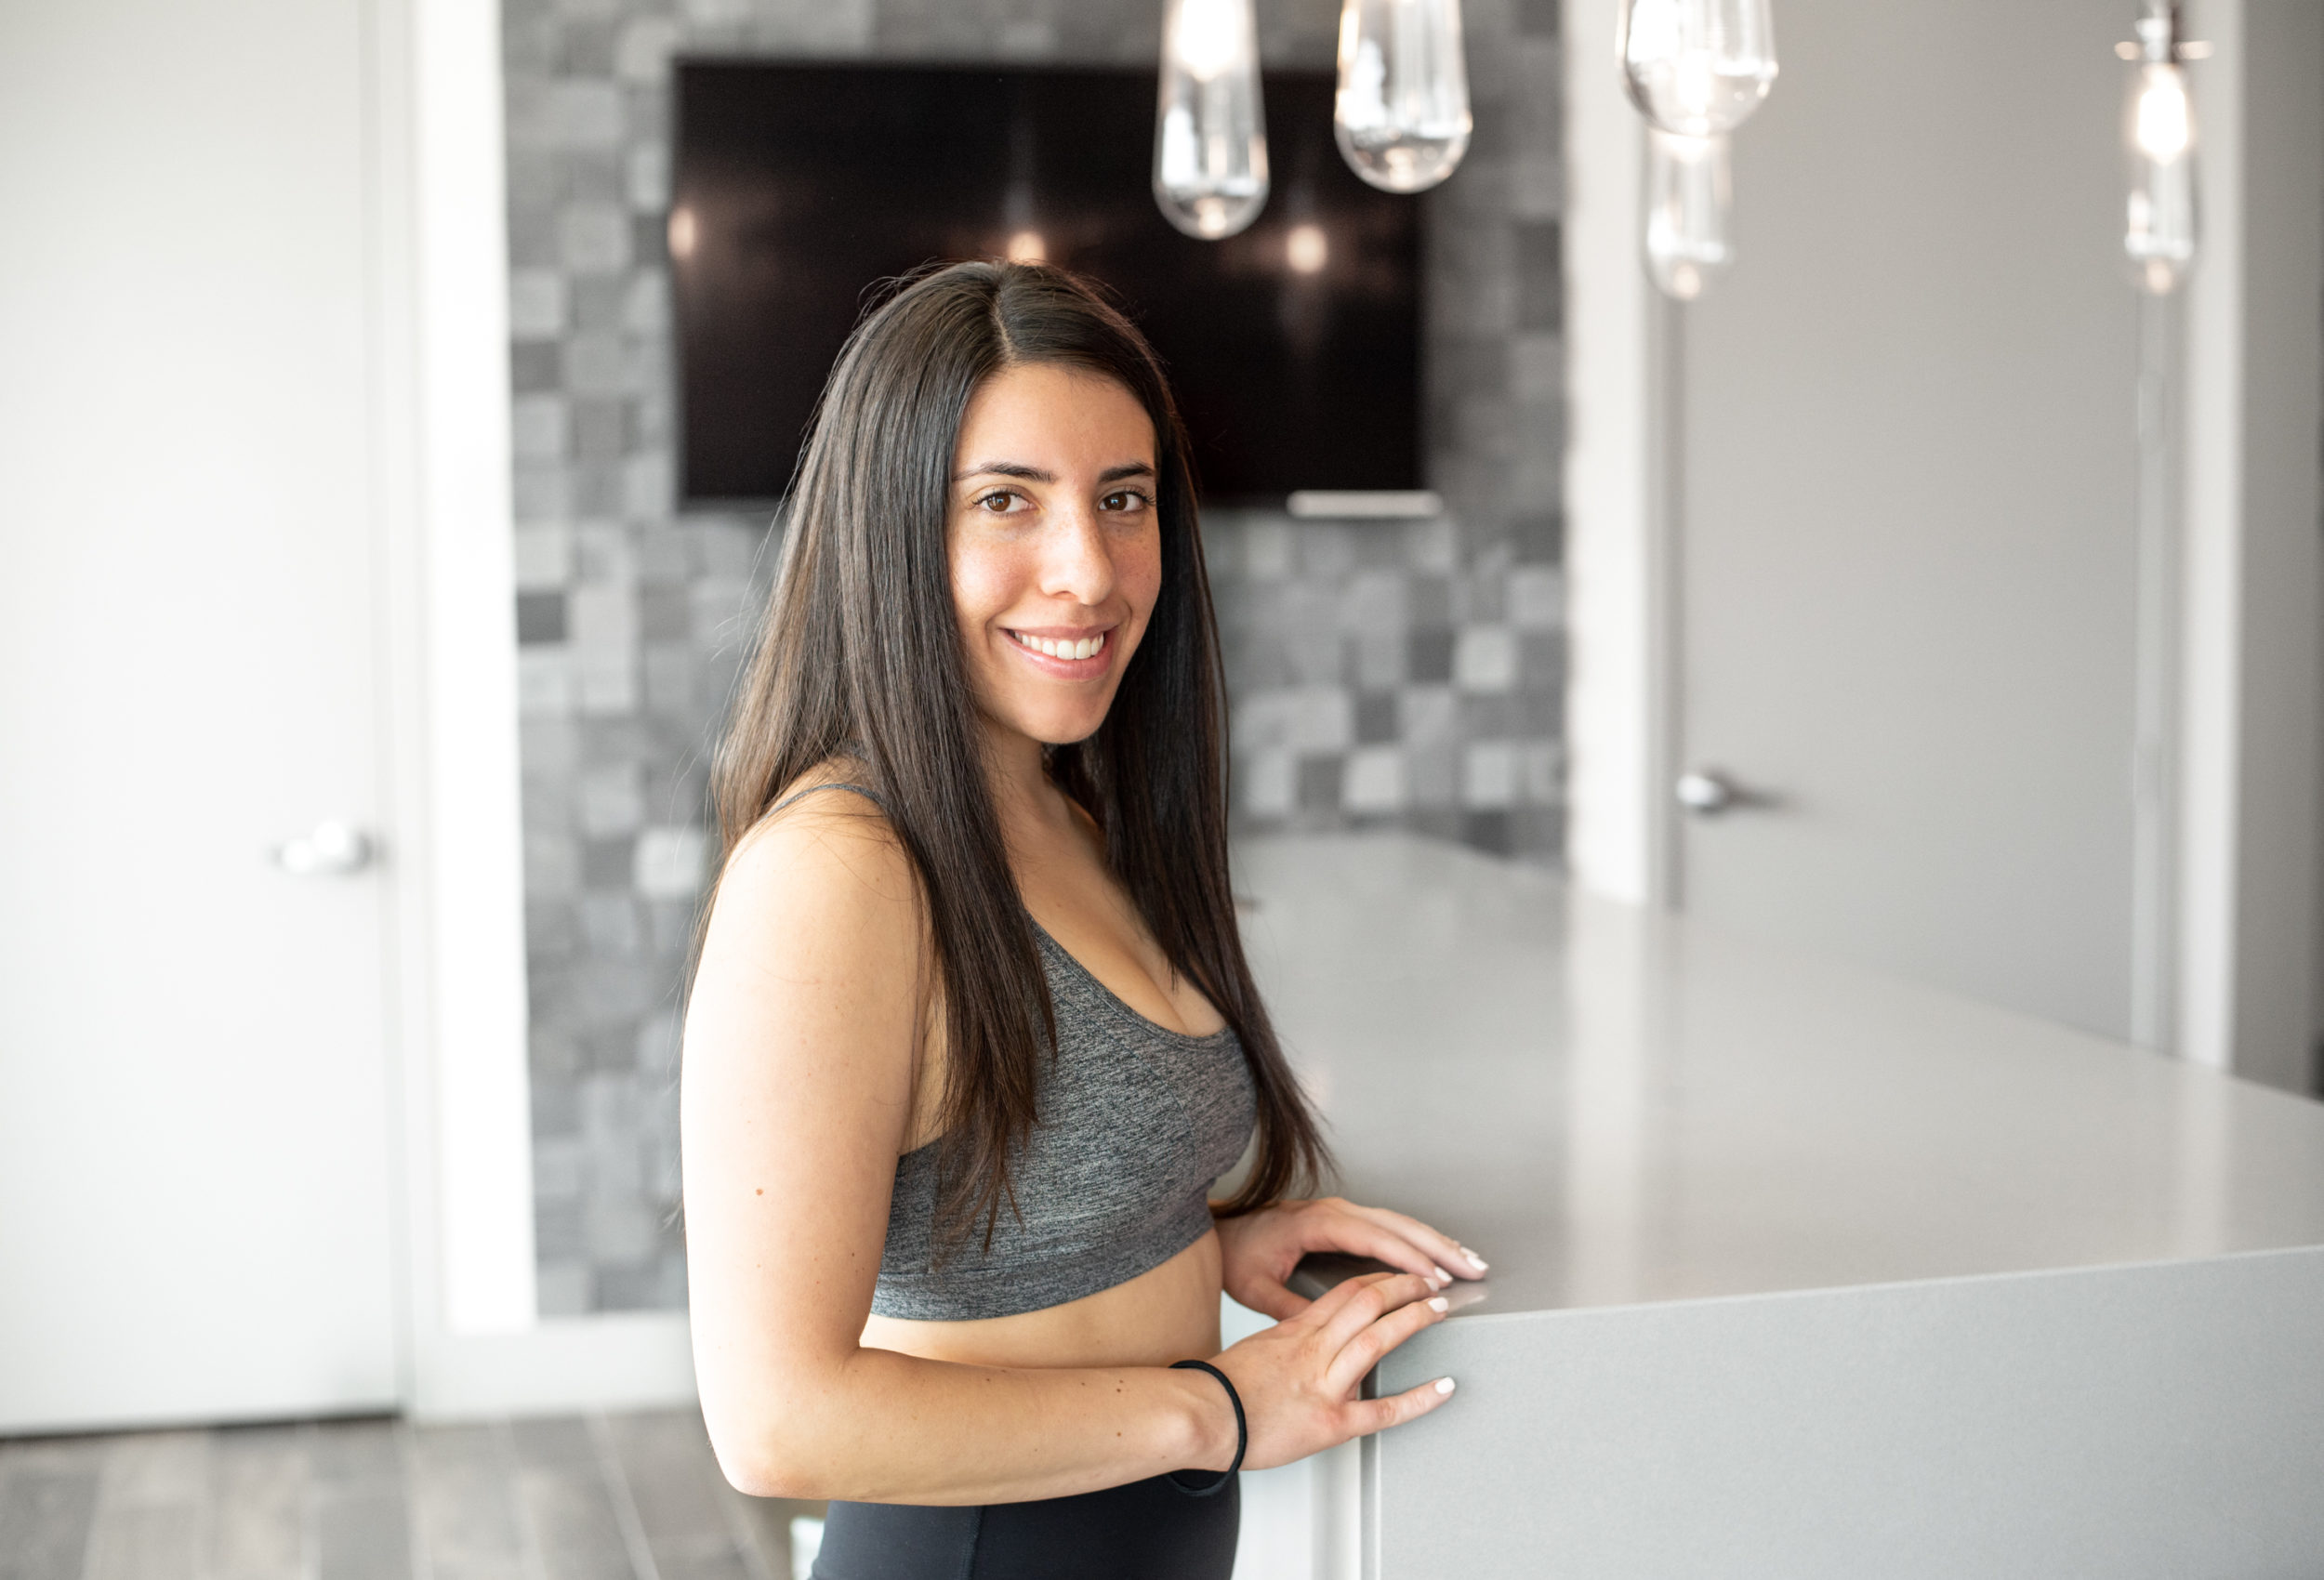 Plant-based coach specializing in weight loss and gut health - Practitioner: Danielle K. - IIN Certified Health CoachDanielle is a holistic health coach specializing in helping women achieve optimal wellness through a plant-based vegan diet.Hourly Sessions: $100